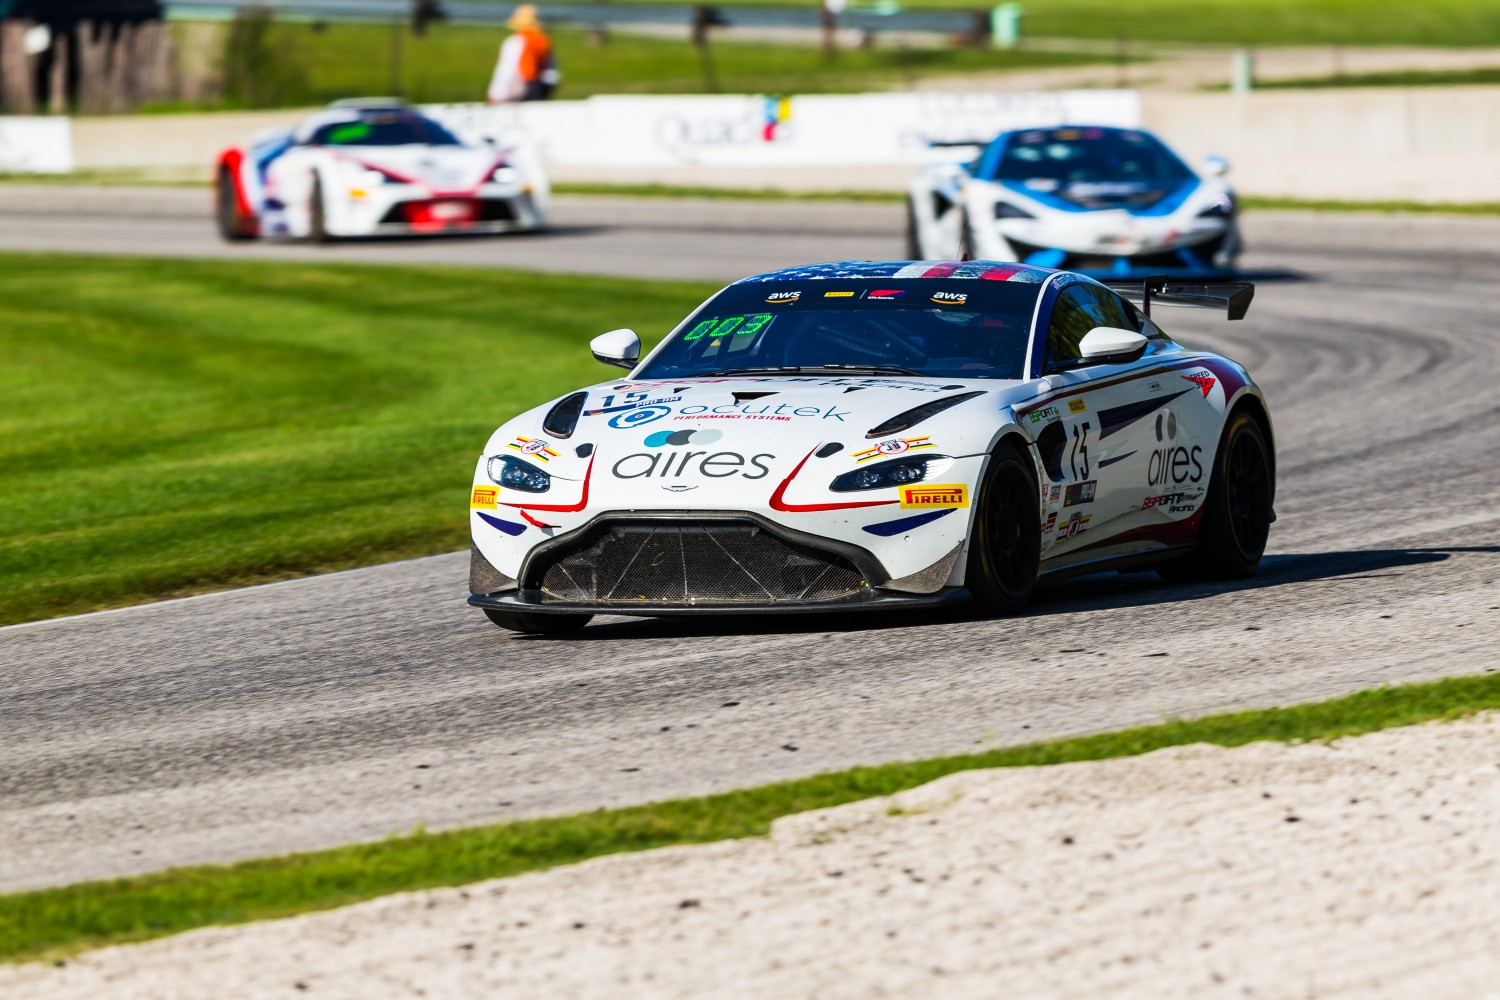 #15 Aston Martin Vantage GT4 of Bryan Putt and Kenton Koch, Bsport Racing, GT4 SprintX Pro-Am, ]SRO America, Road America,  Elkhart Lake,  WI, July 2020. | Fabian Lagunas/SRO